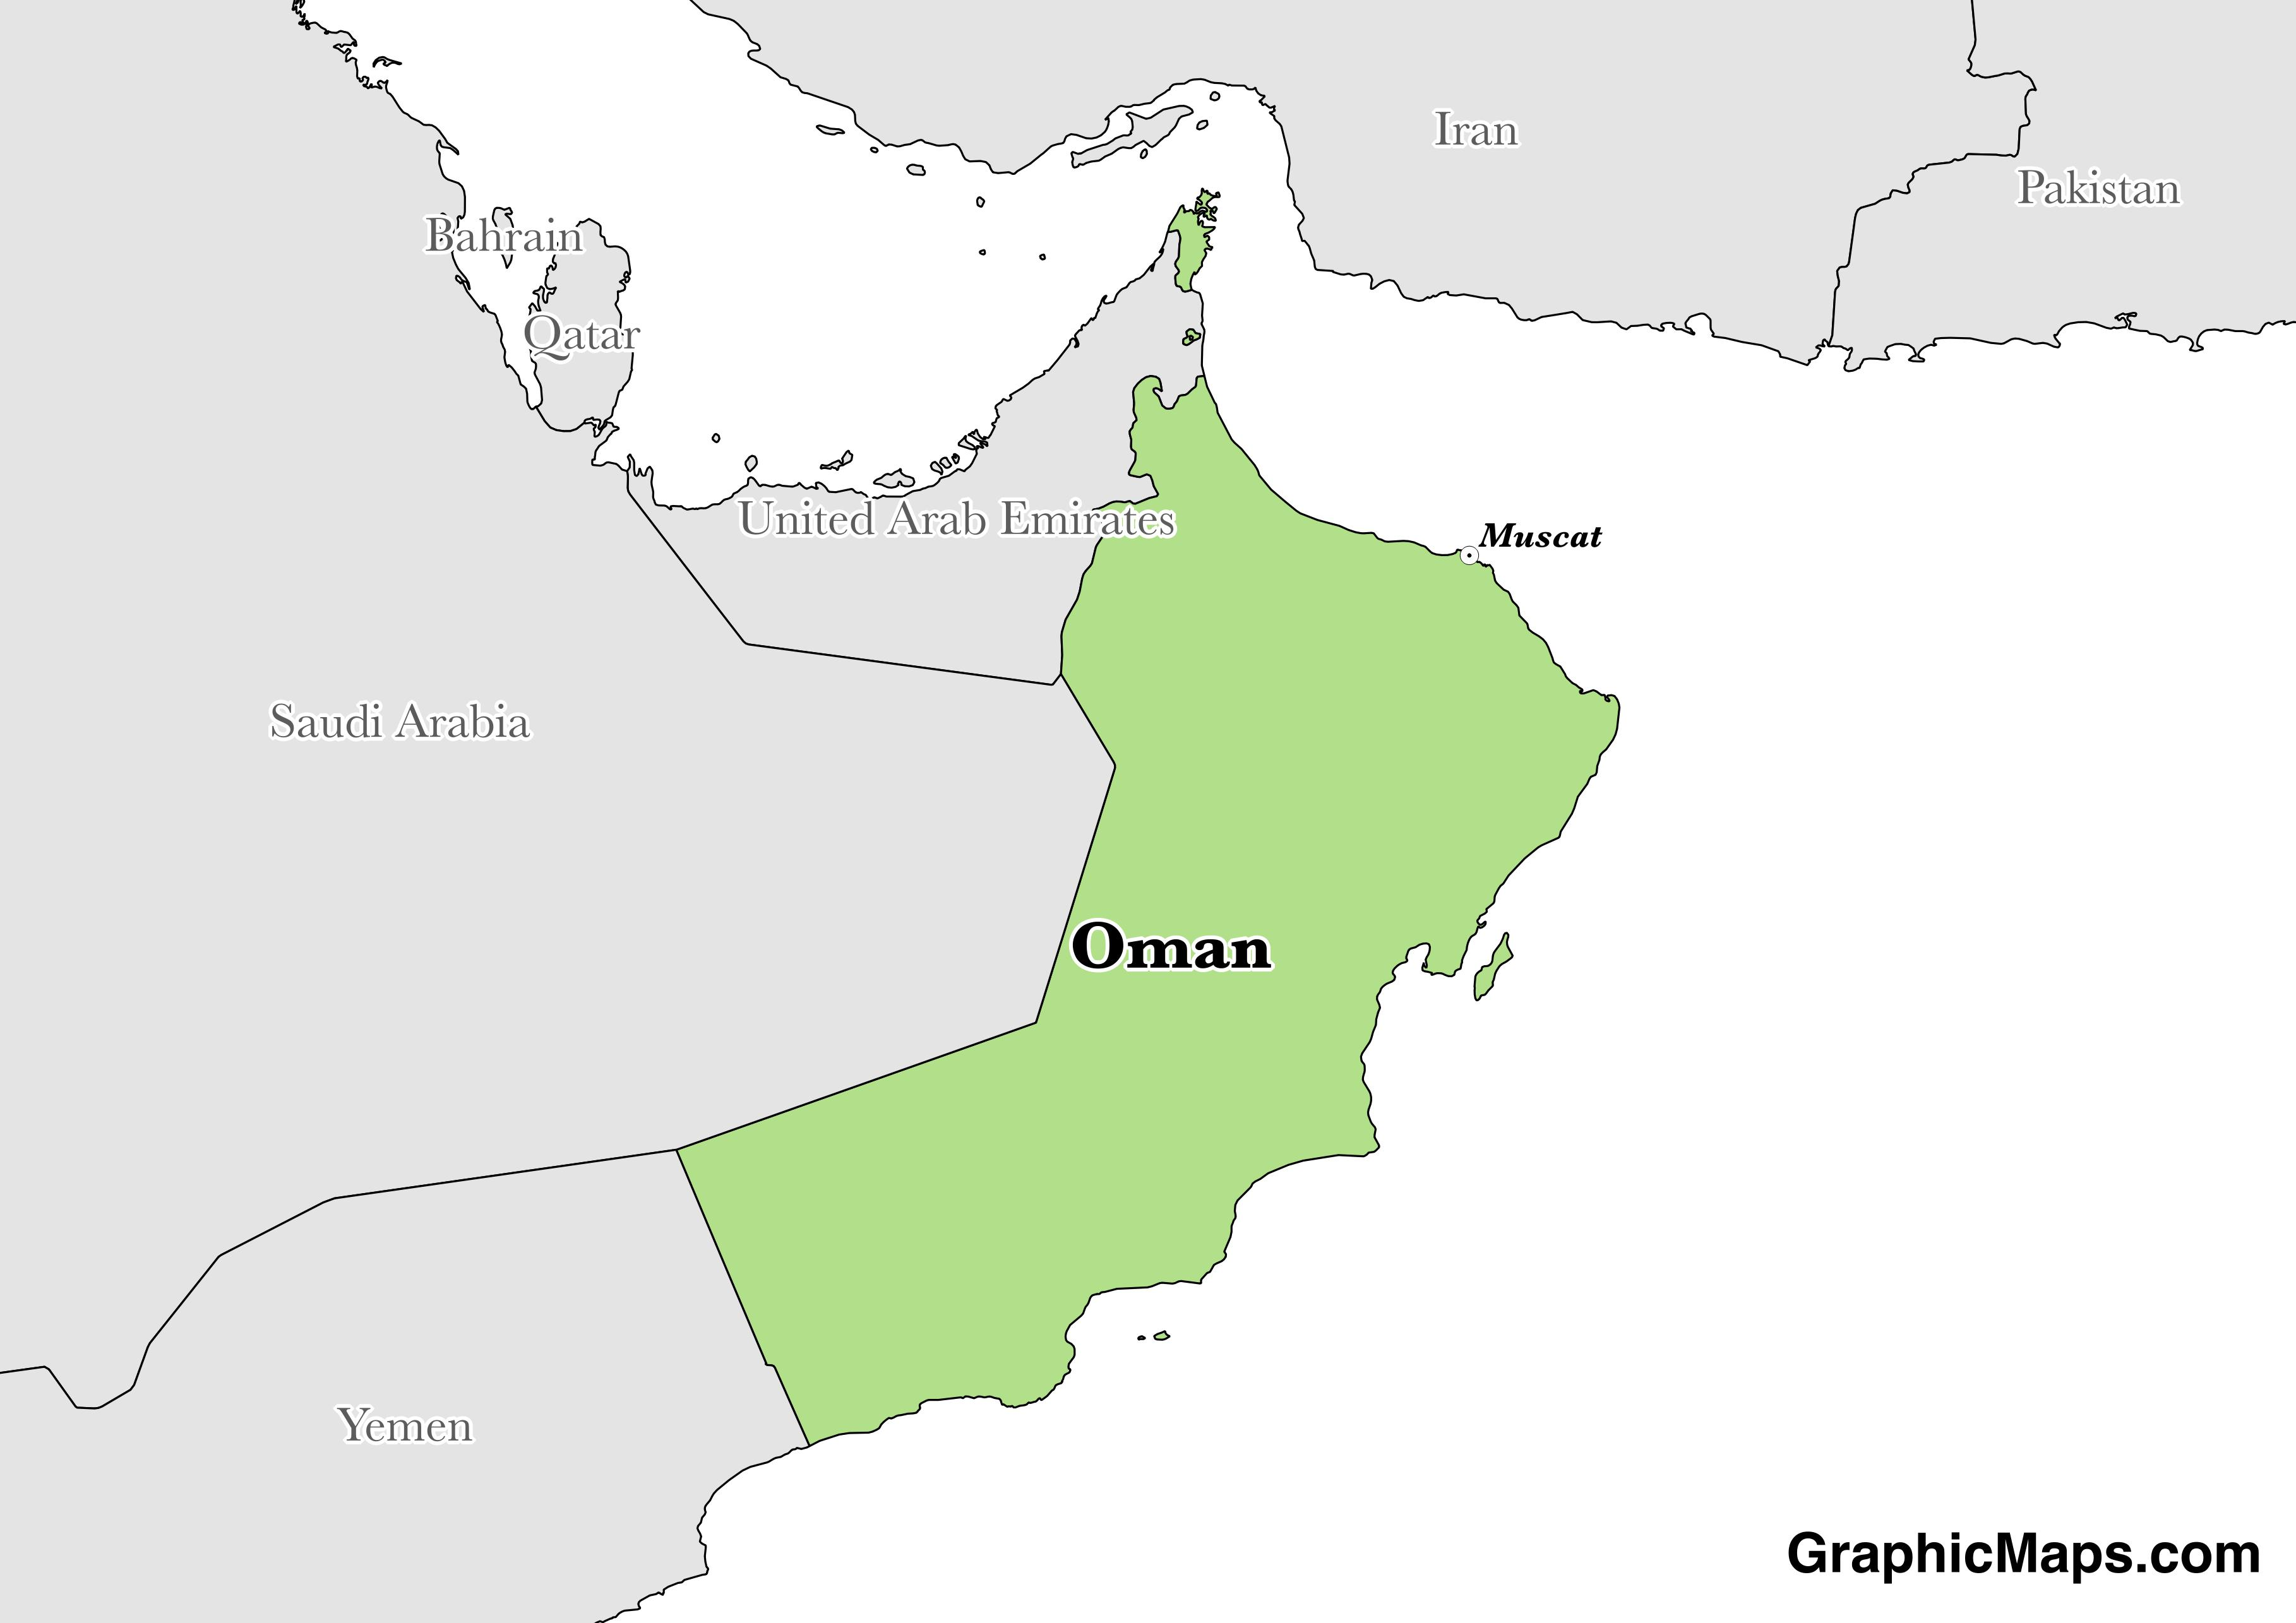 Map showing the location of Oman